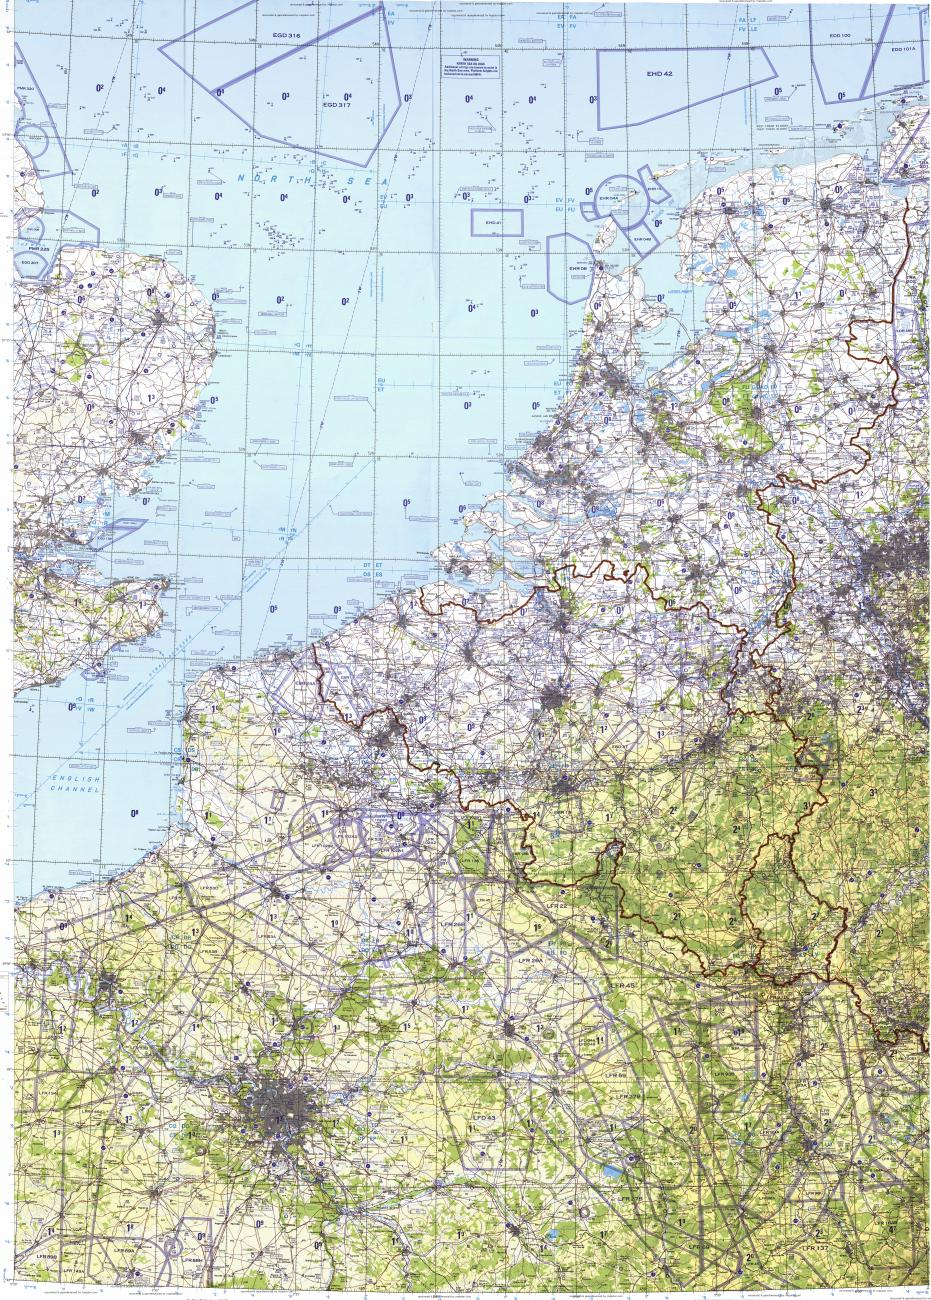 Download topographic map in area of Paris Brussels Amsterdam